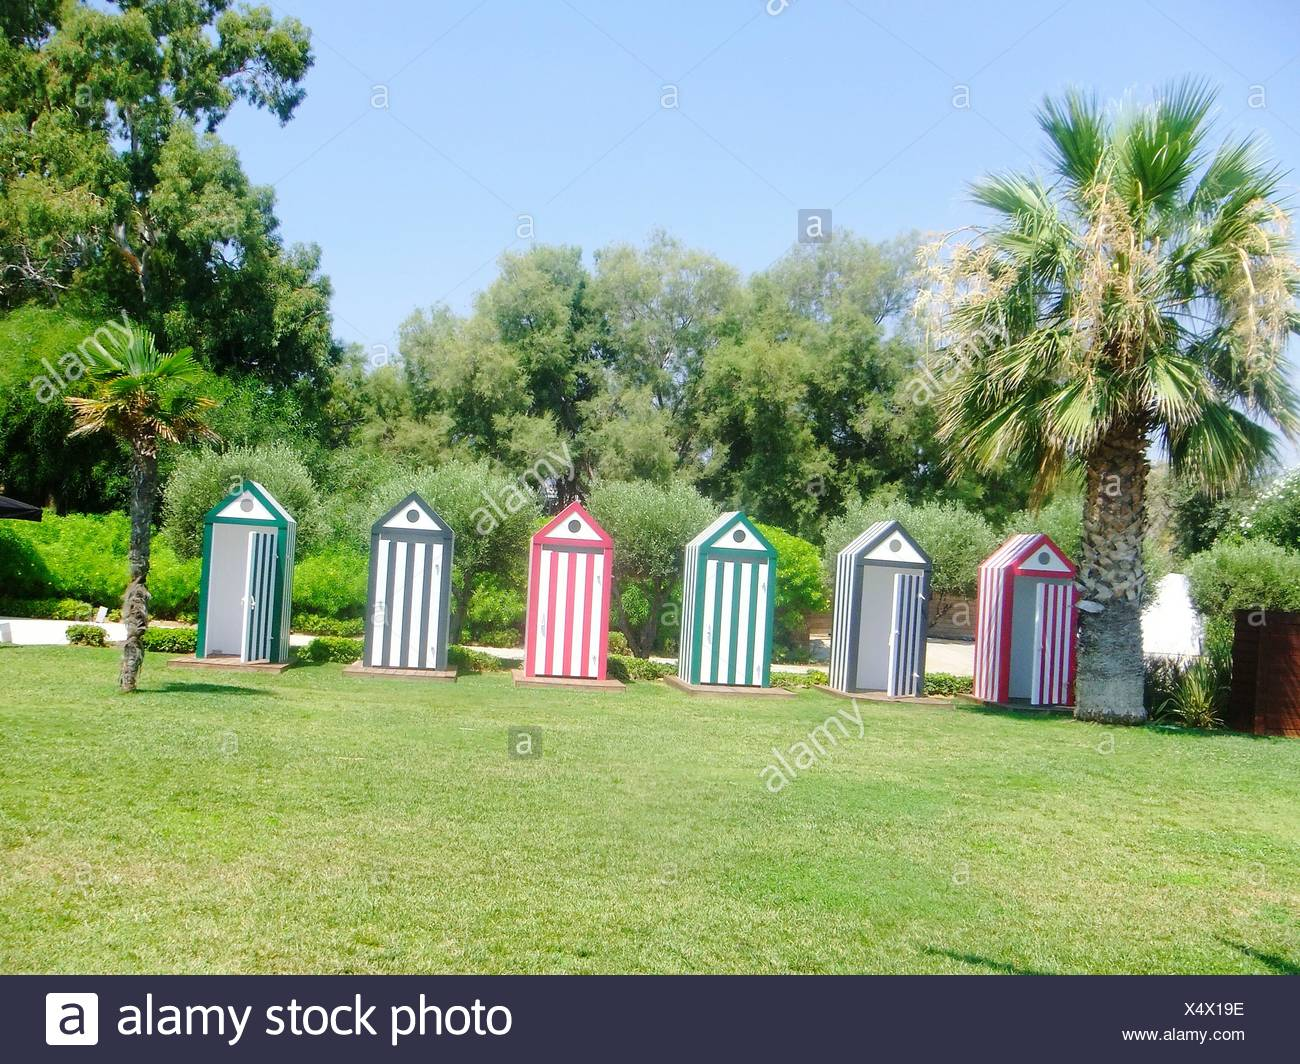 Public Restrooms On Grassy Field Against Clear Sky - Stock Image